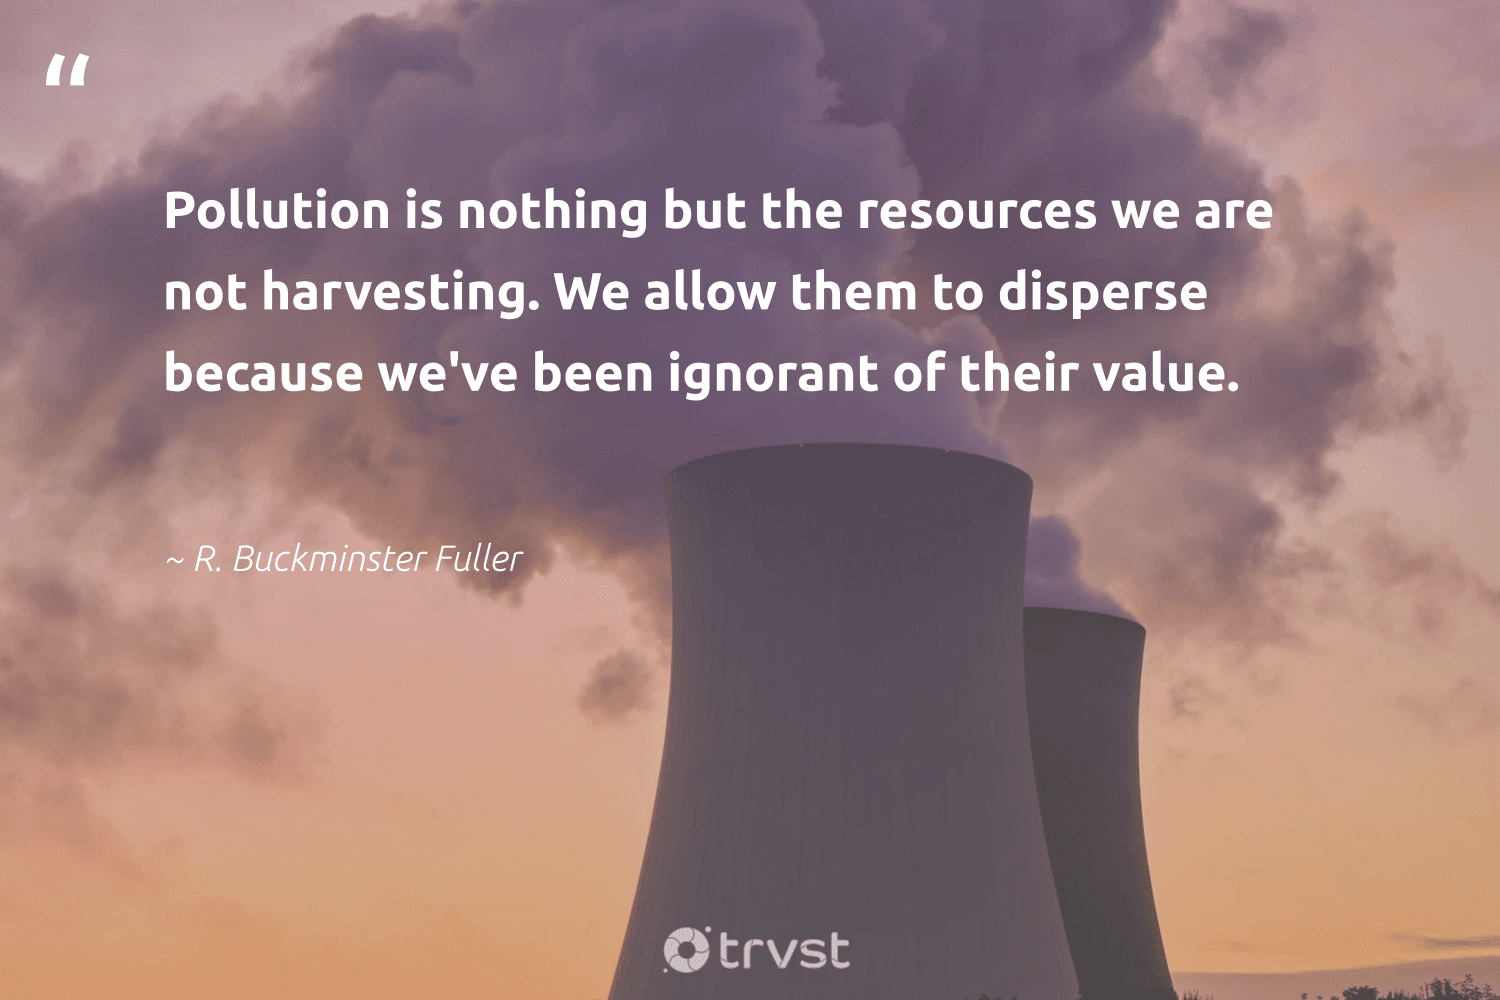 """""""Pollution is nothing but the resources we are not harvesting. We allow them to disperse because we've been ignorant of their value.""""  - R. Buckminster Fuller #trvst #quotes #pollution #pollute #ecoconscious #volunteer #impact #spill #actonclimate #getoutside #dosomething #toxic"""